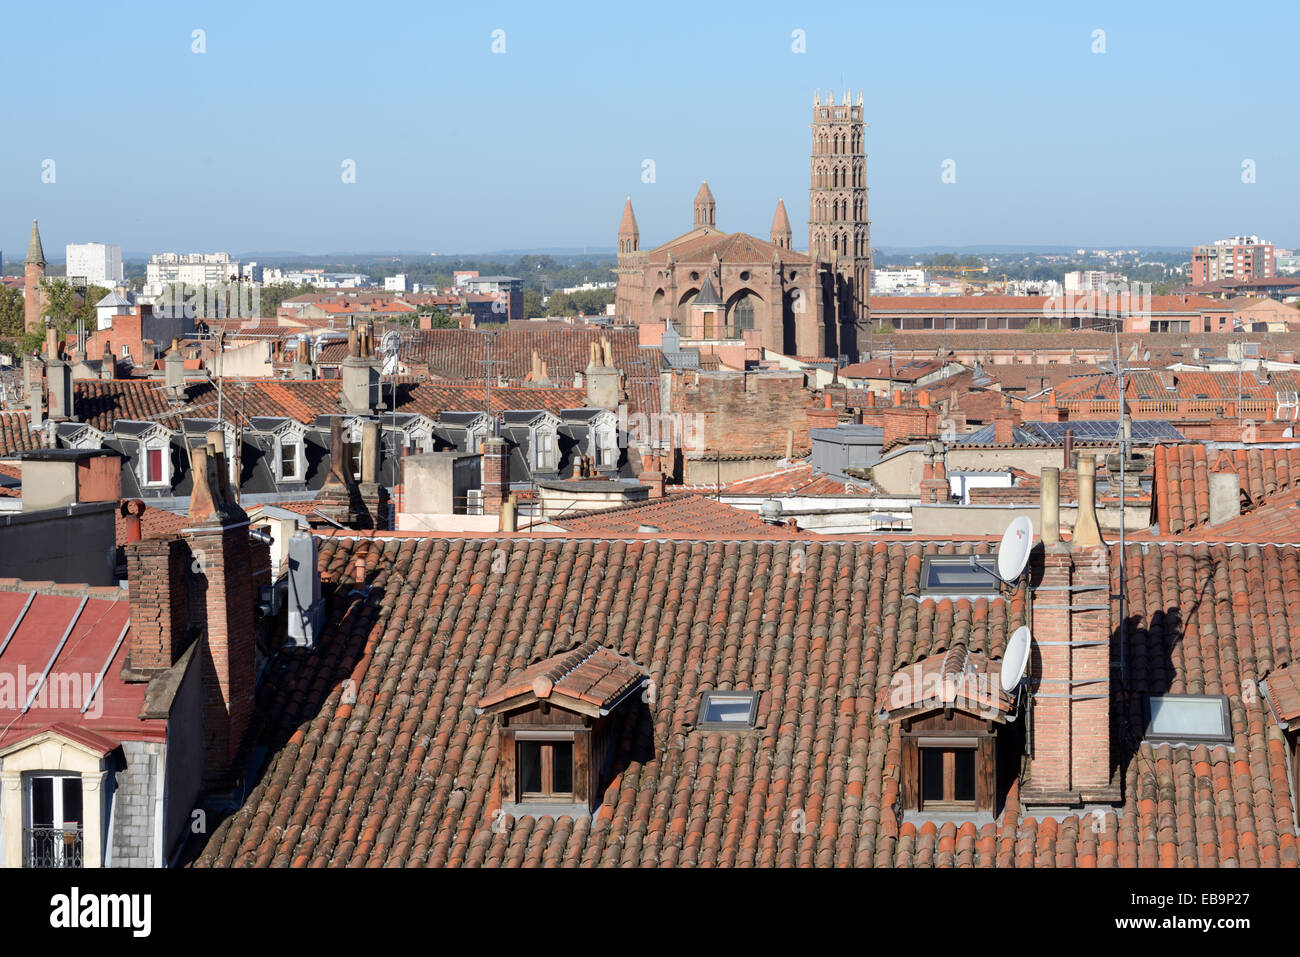 Cityscape or Panoramic View over the Rooftops & Church of the Jacobins or Jacobins Church or Monastery Toulouse - Stock Image